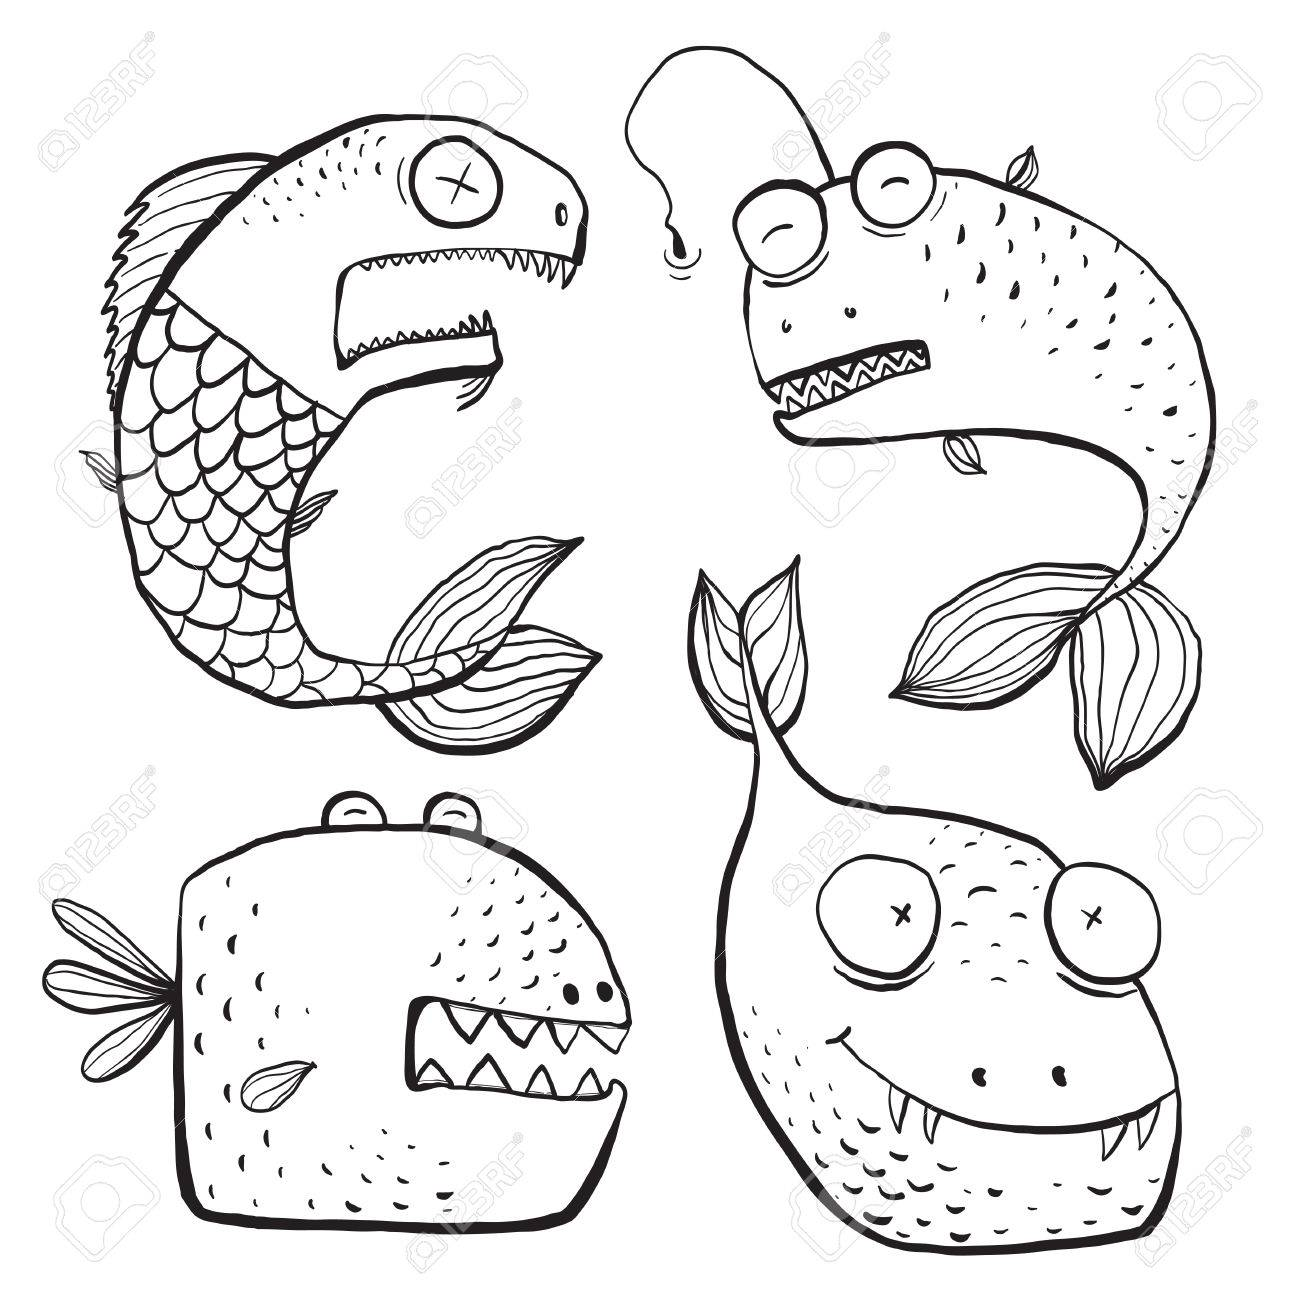 fun black and white line art fish characters coloring book cartoon